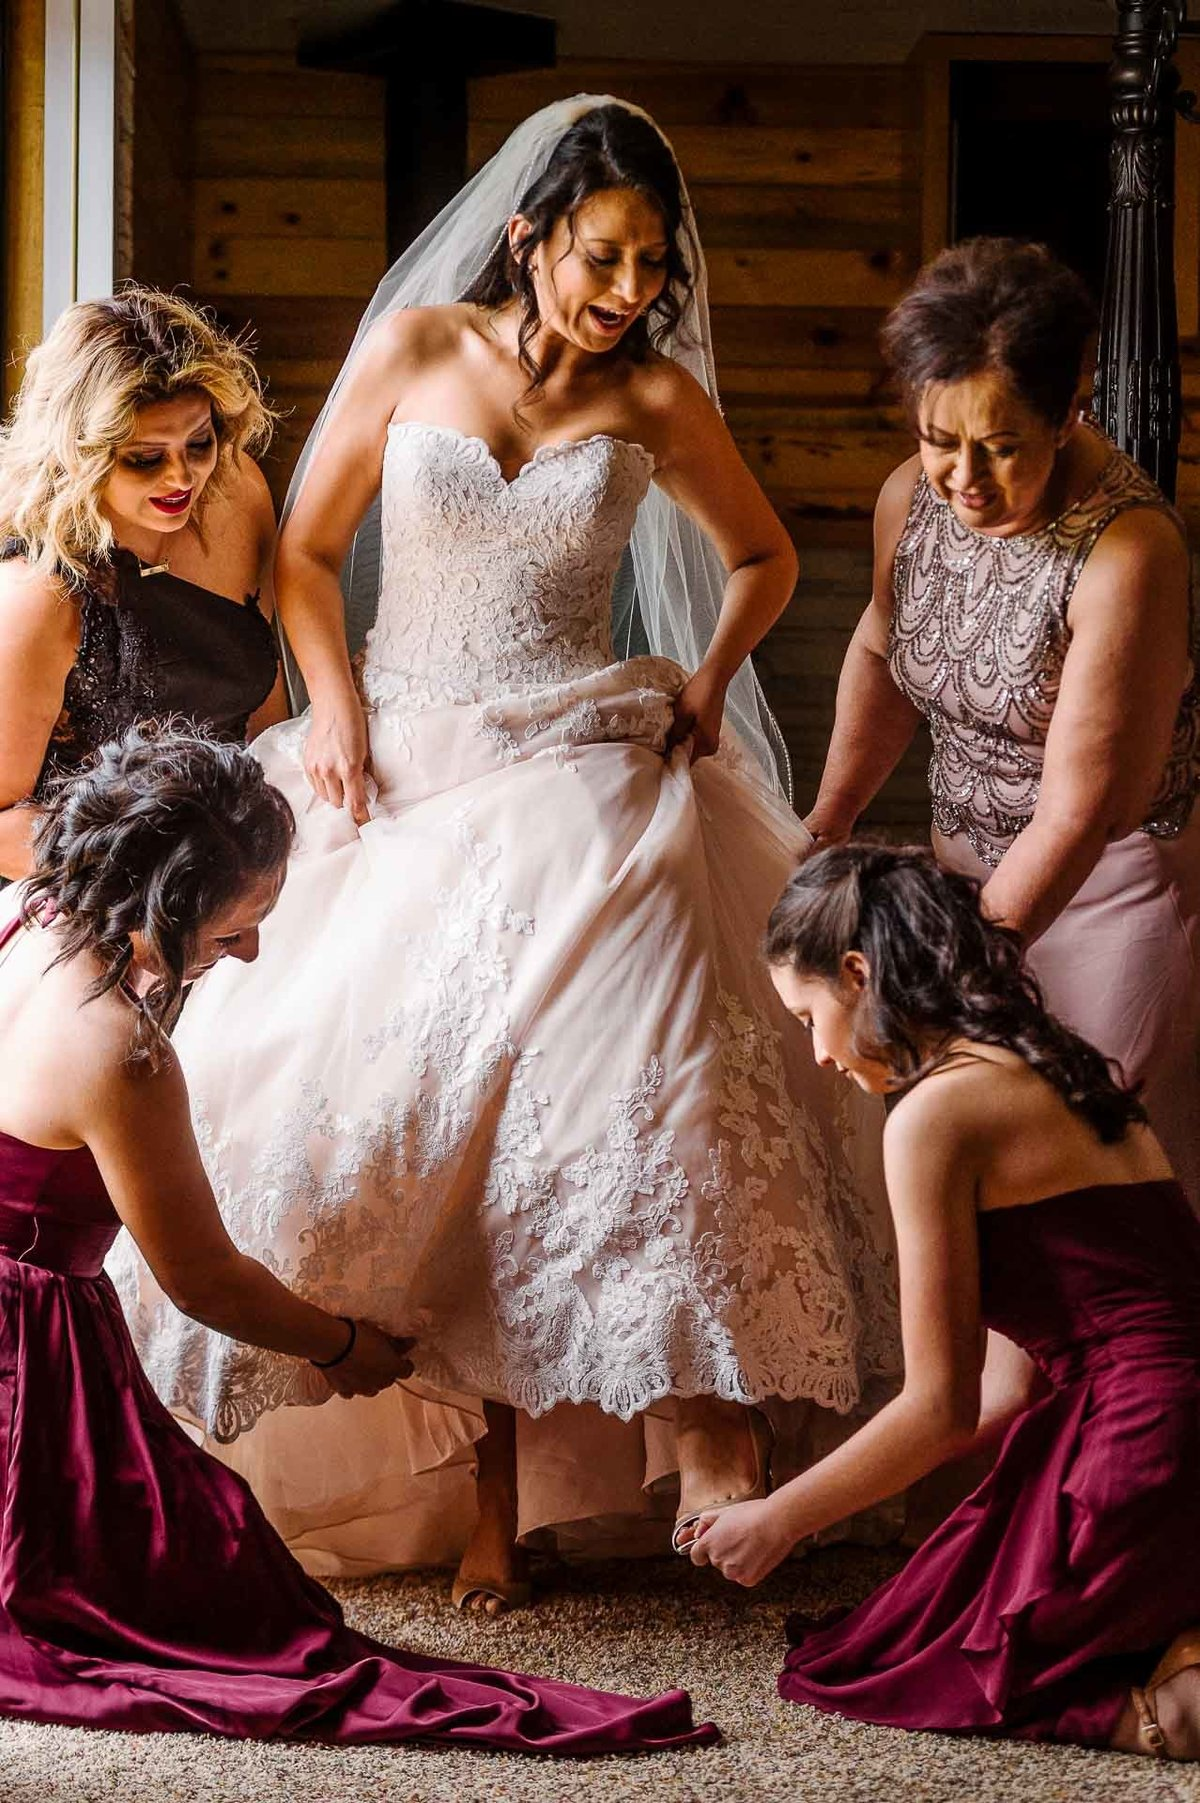 bridesmaids helping bride getting ready by stephane lemaire photography